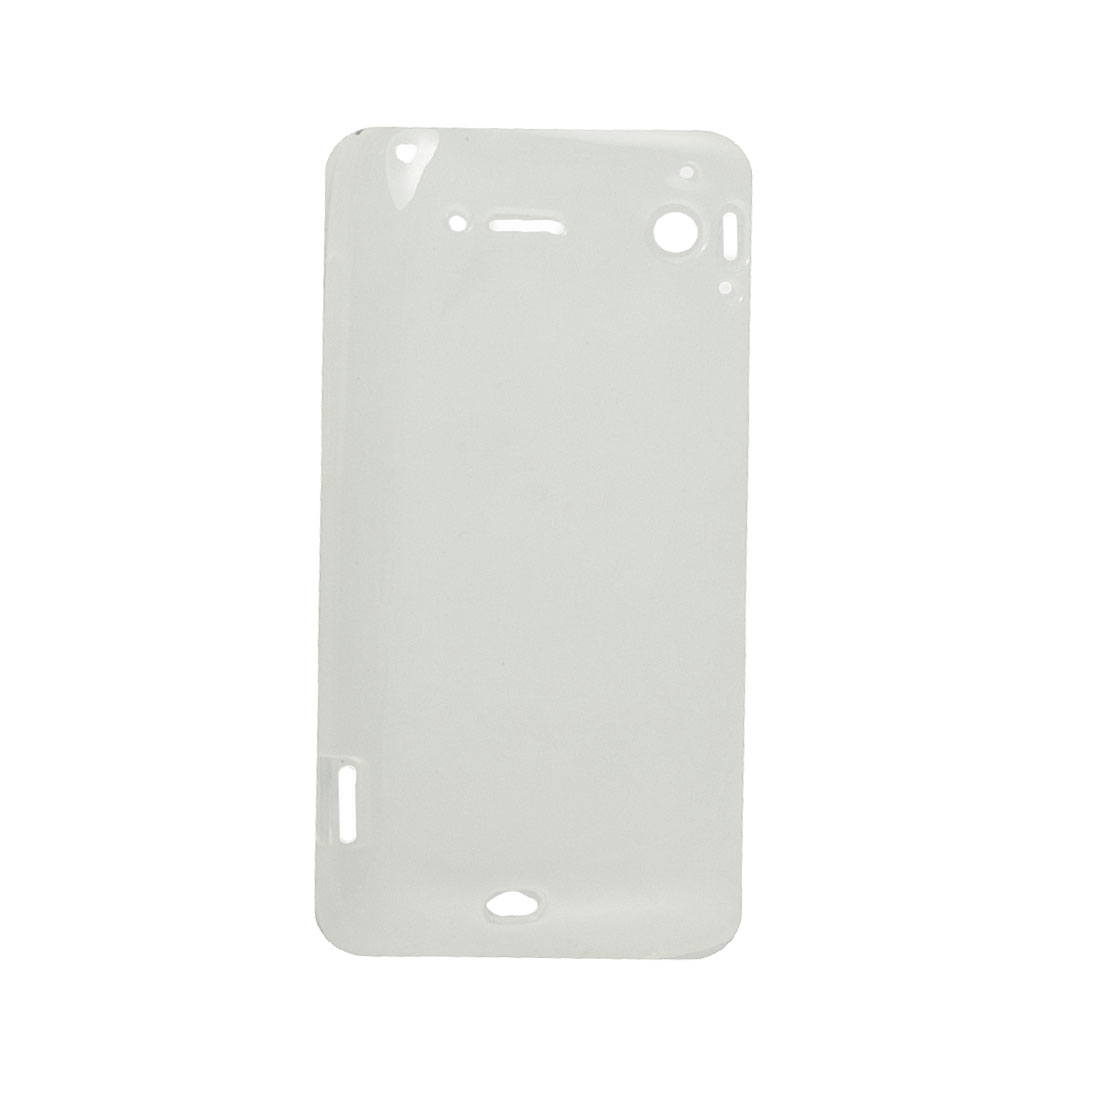 Clear White Flexible Case Cover for HTC Sensation XE G18 G14